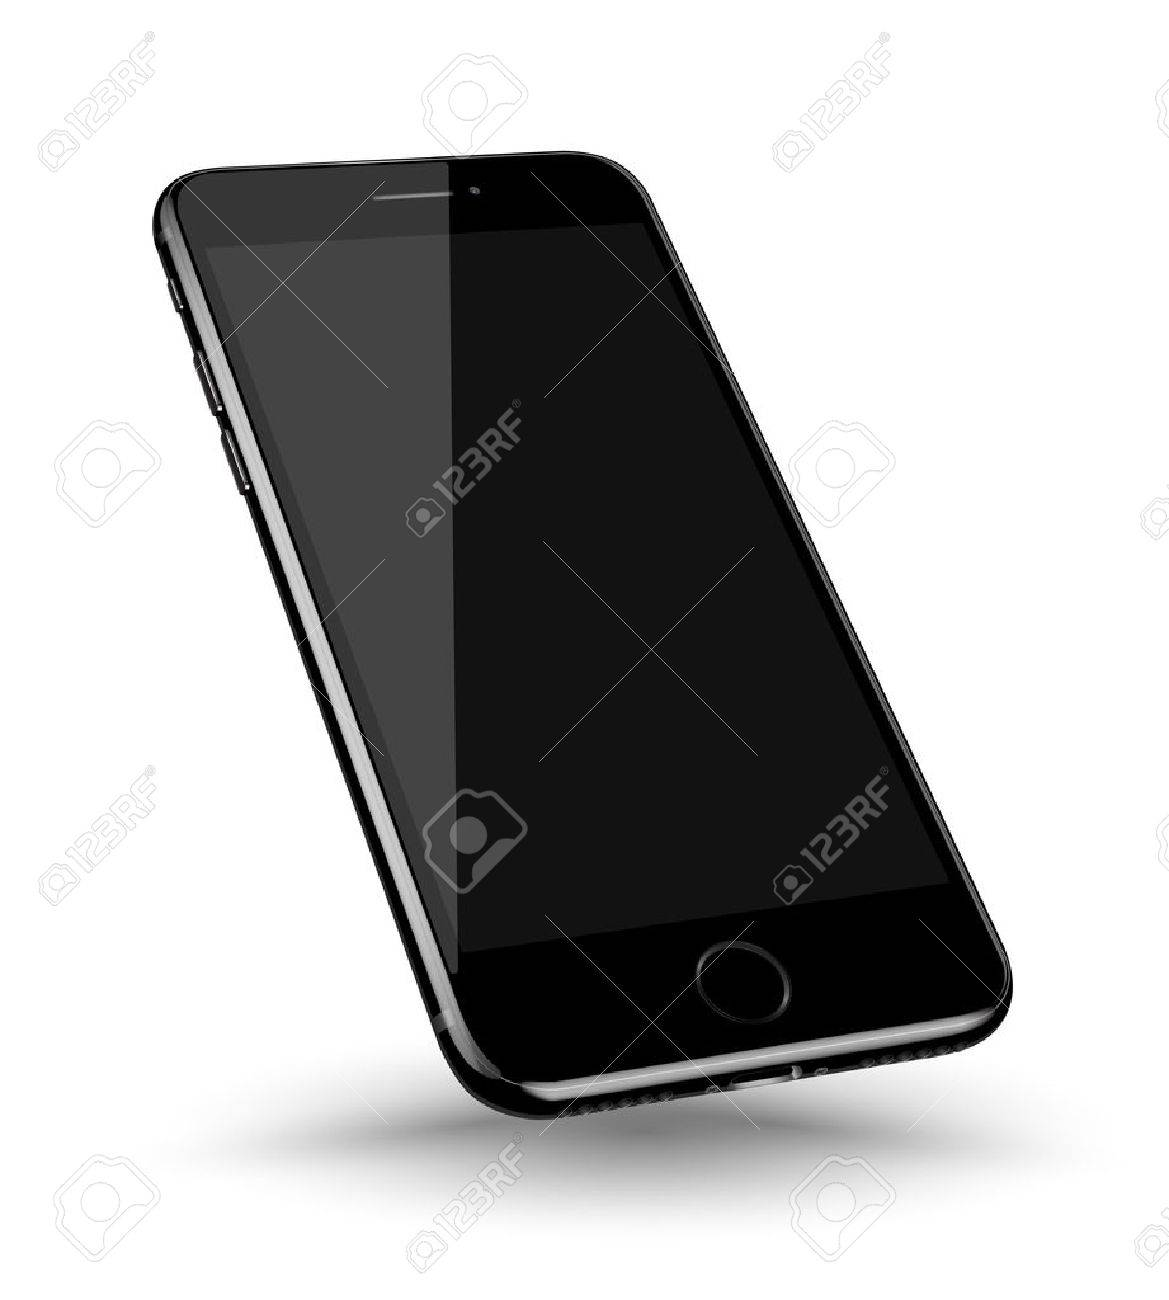 Perspective smartphone realistic mock-up. Vector illustration. - 63594544